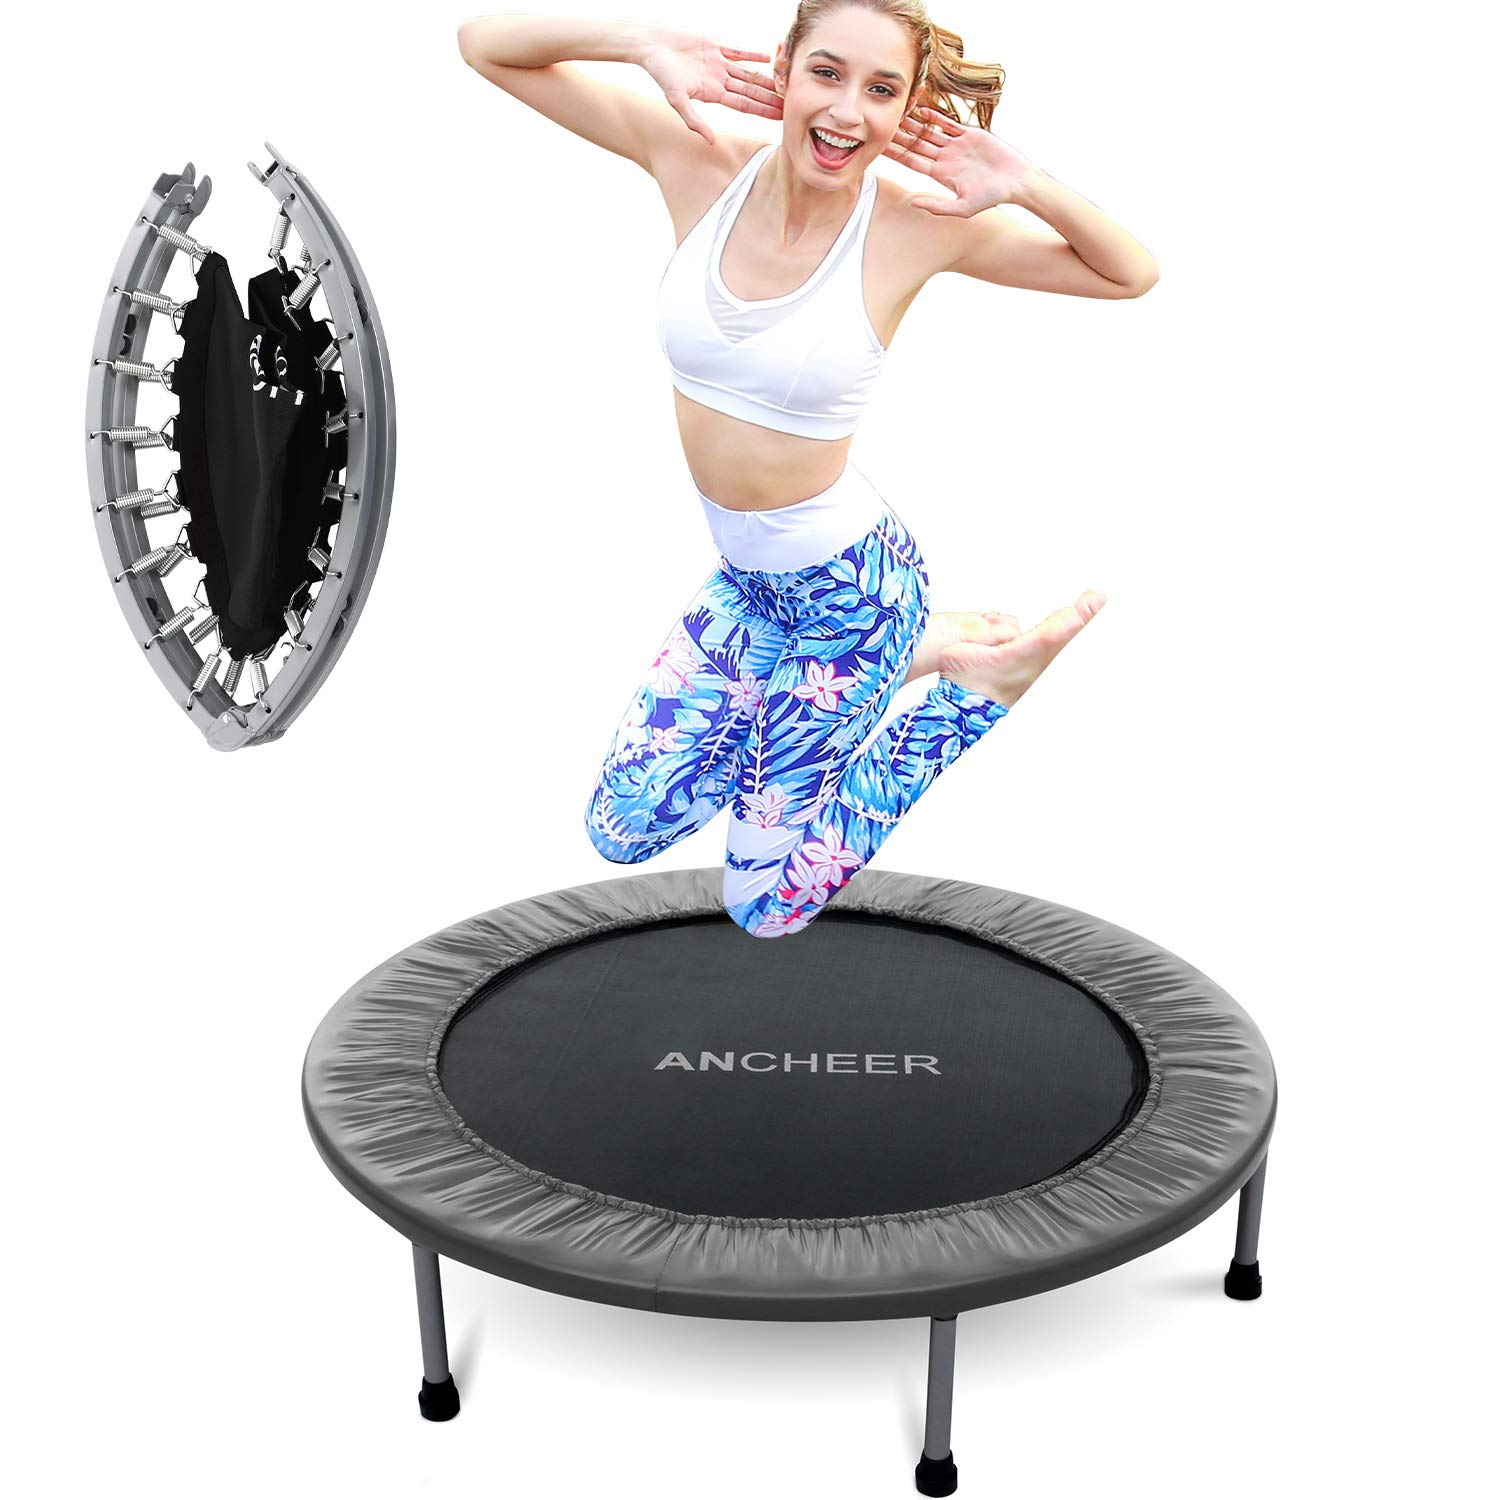 ANCHEER Mini Trampoline with Safety Pad, 220lbs Weight Capacity Fitness Rebounder Trampolines for Home Gym Office Garden Workout Cardio Training Equipment (Gray, 40inch-Folding one time) by ANCHEER (Image #6)